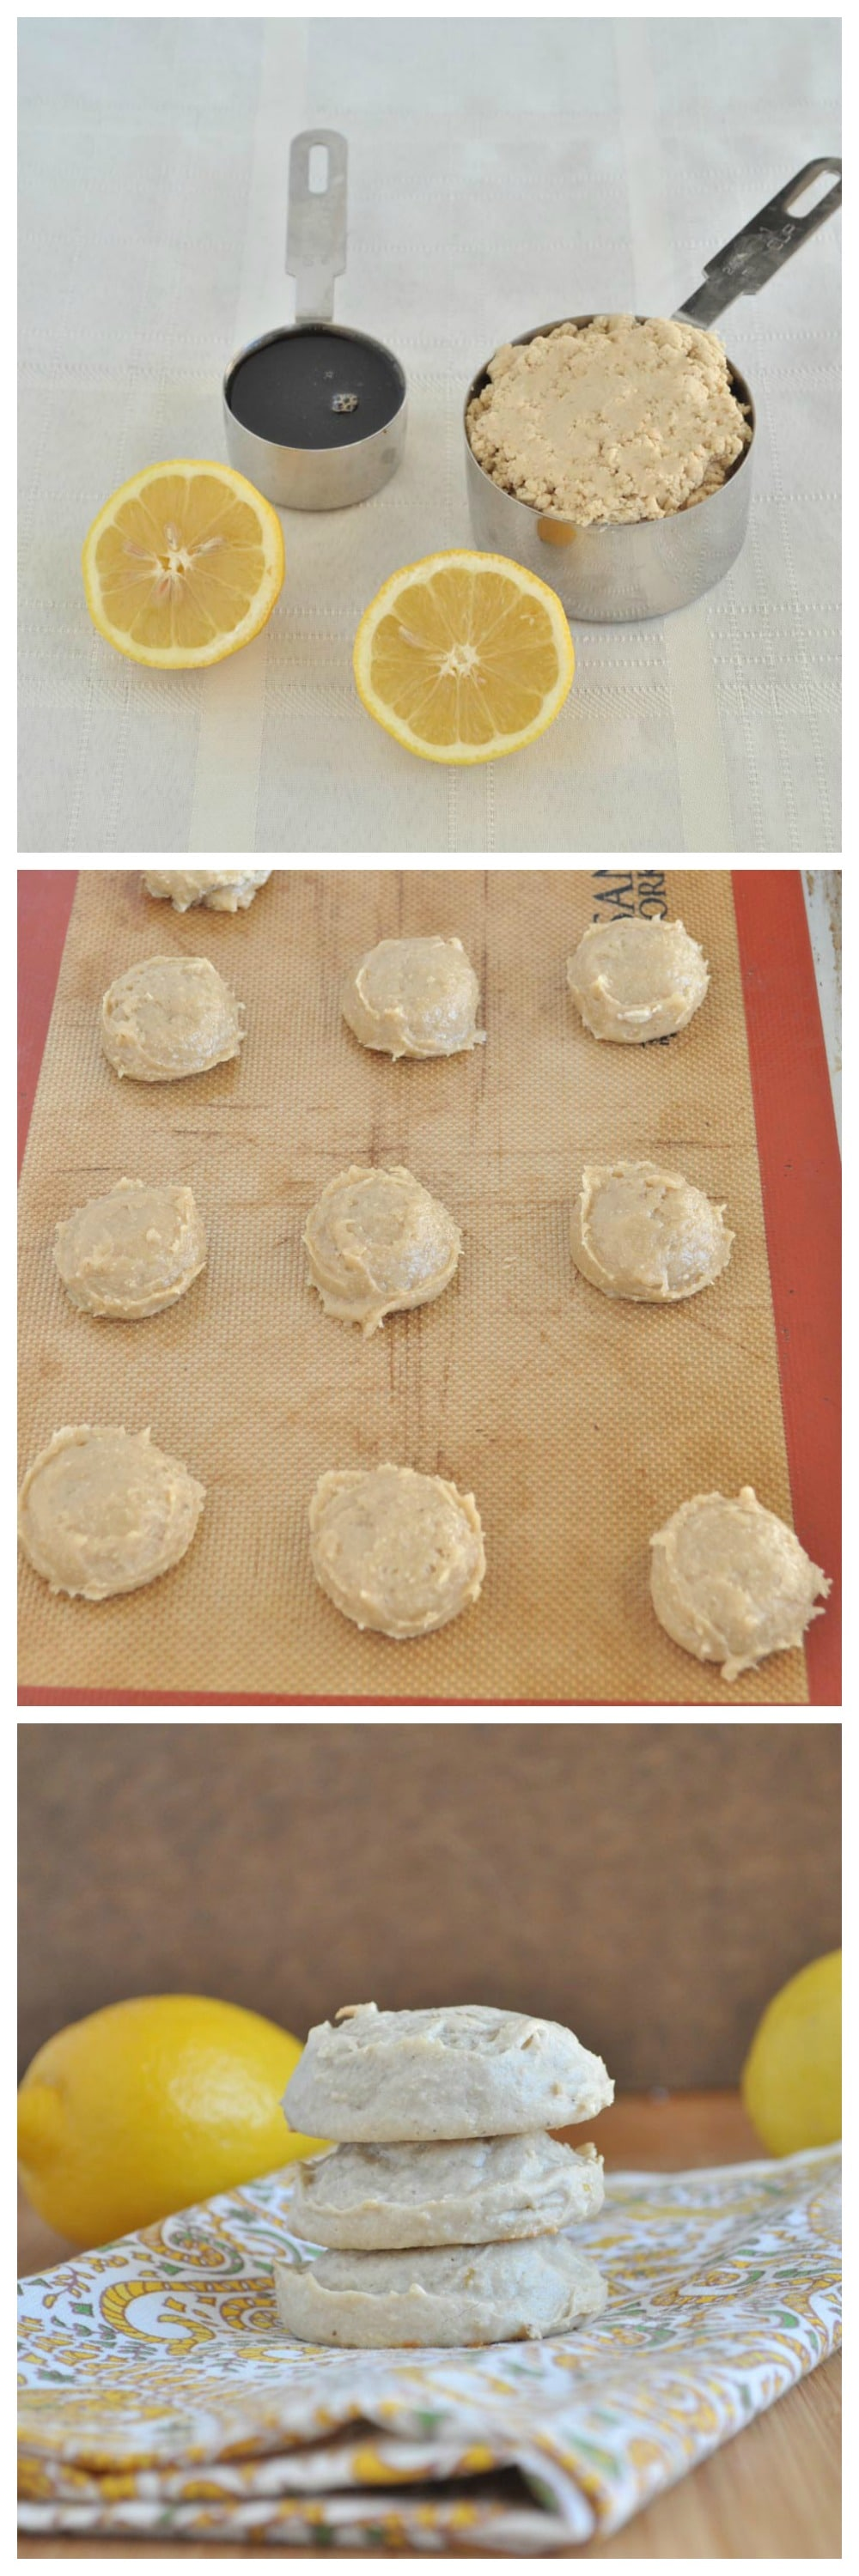 Flourless Lemon Cookies Steps